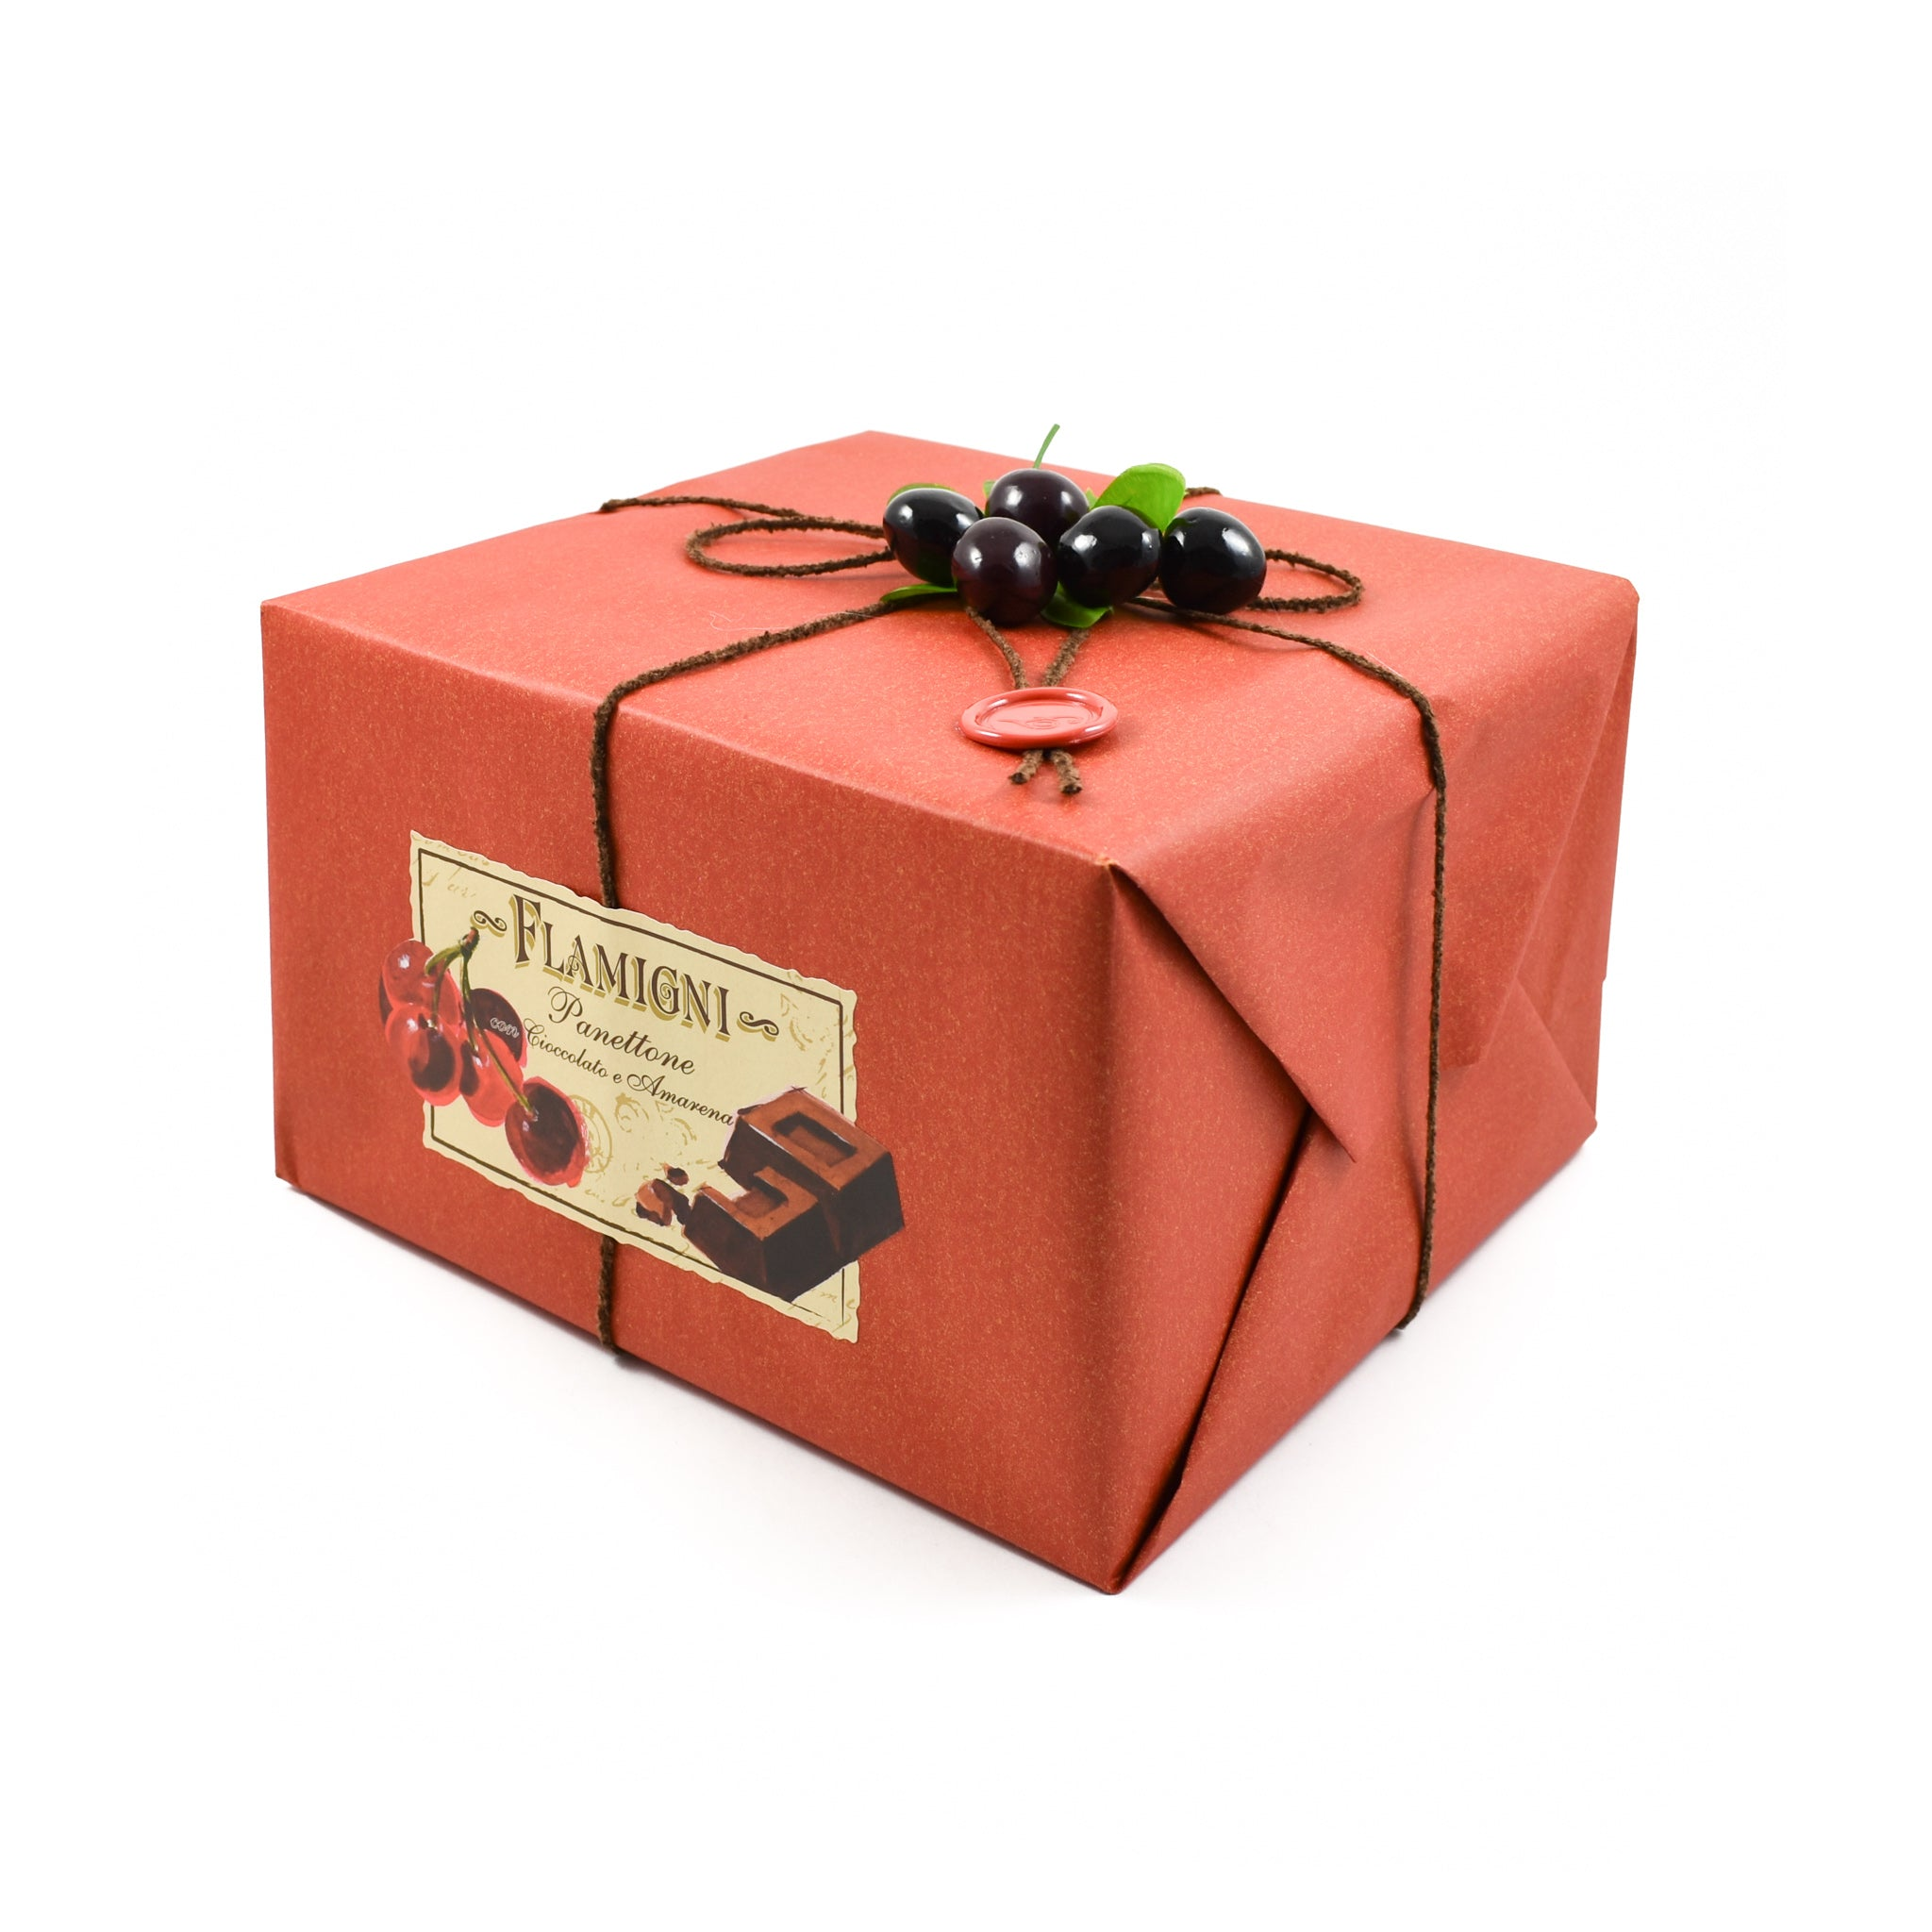 Flamigni Dark Chocolate & Amarena Cherry Panettone 1kg Ingredients Chocolate Bars & Confectionery Italian Food Panettone & Pandoro